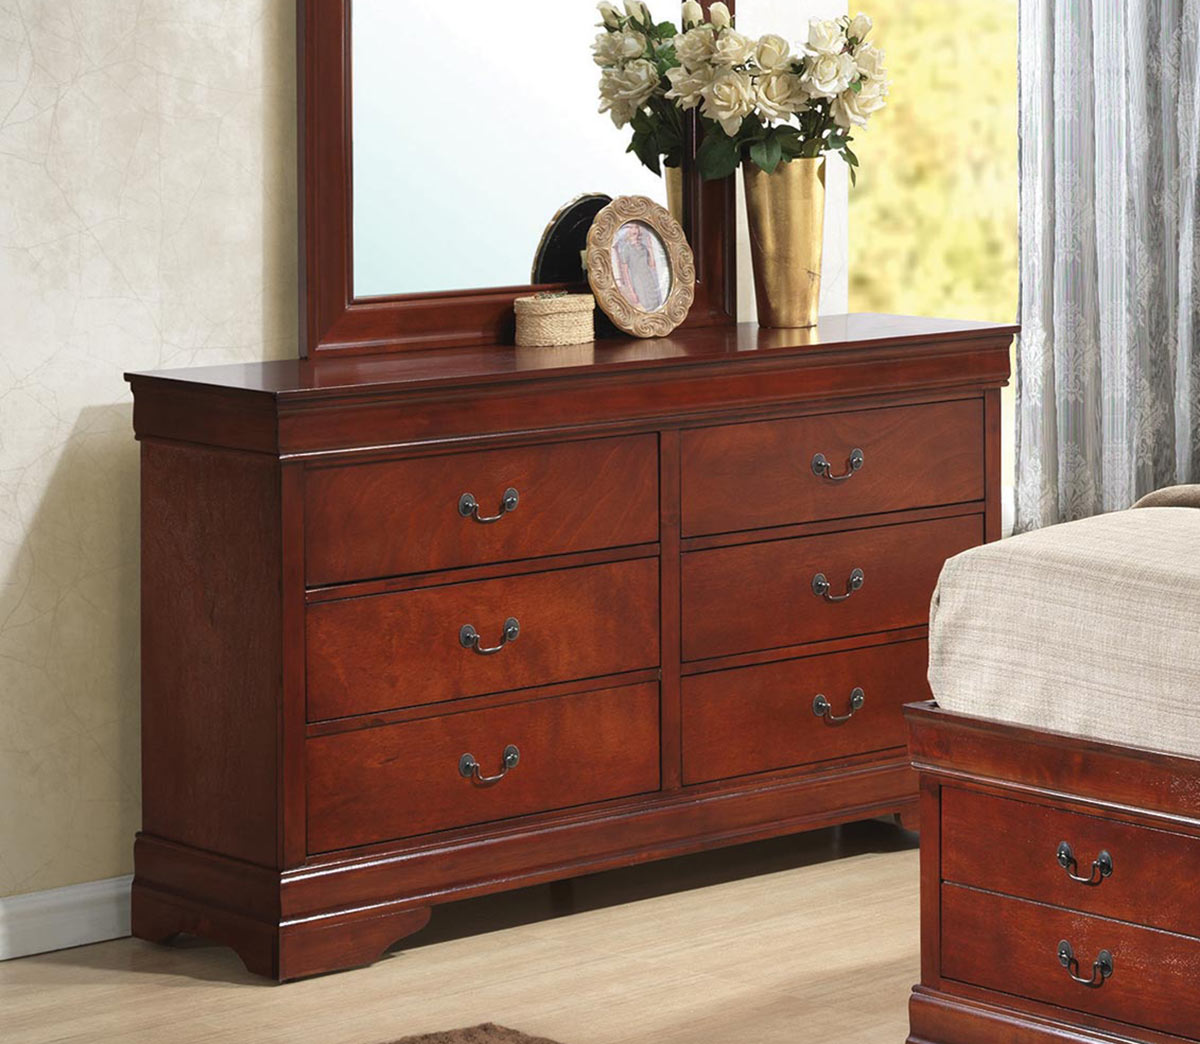 Coaster Louis Philippe Dresser - Red Brown